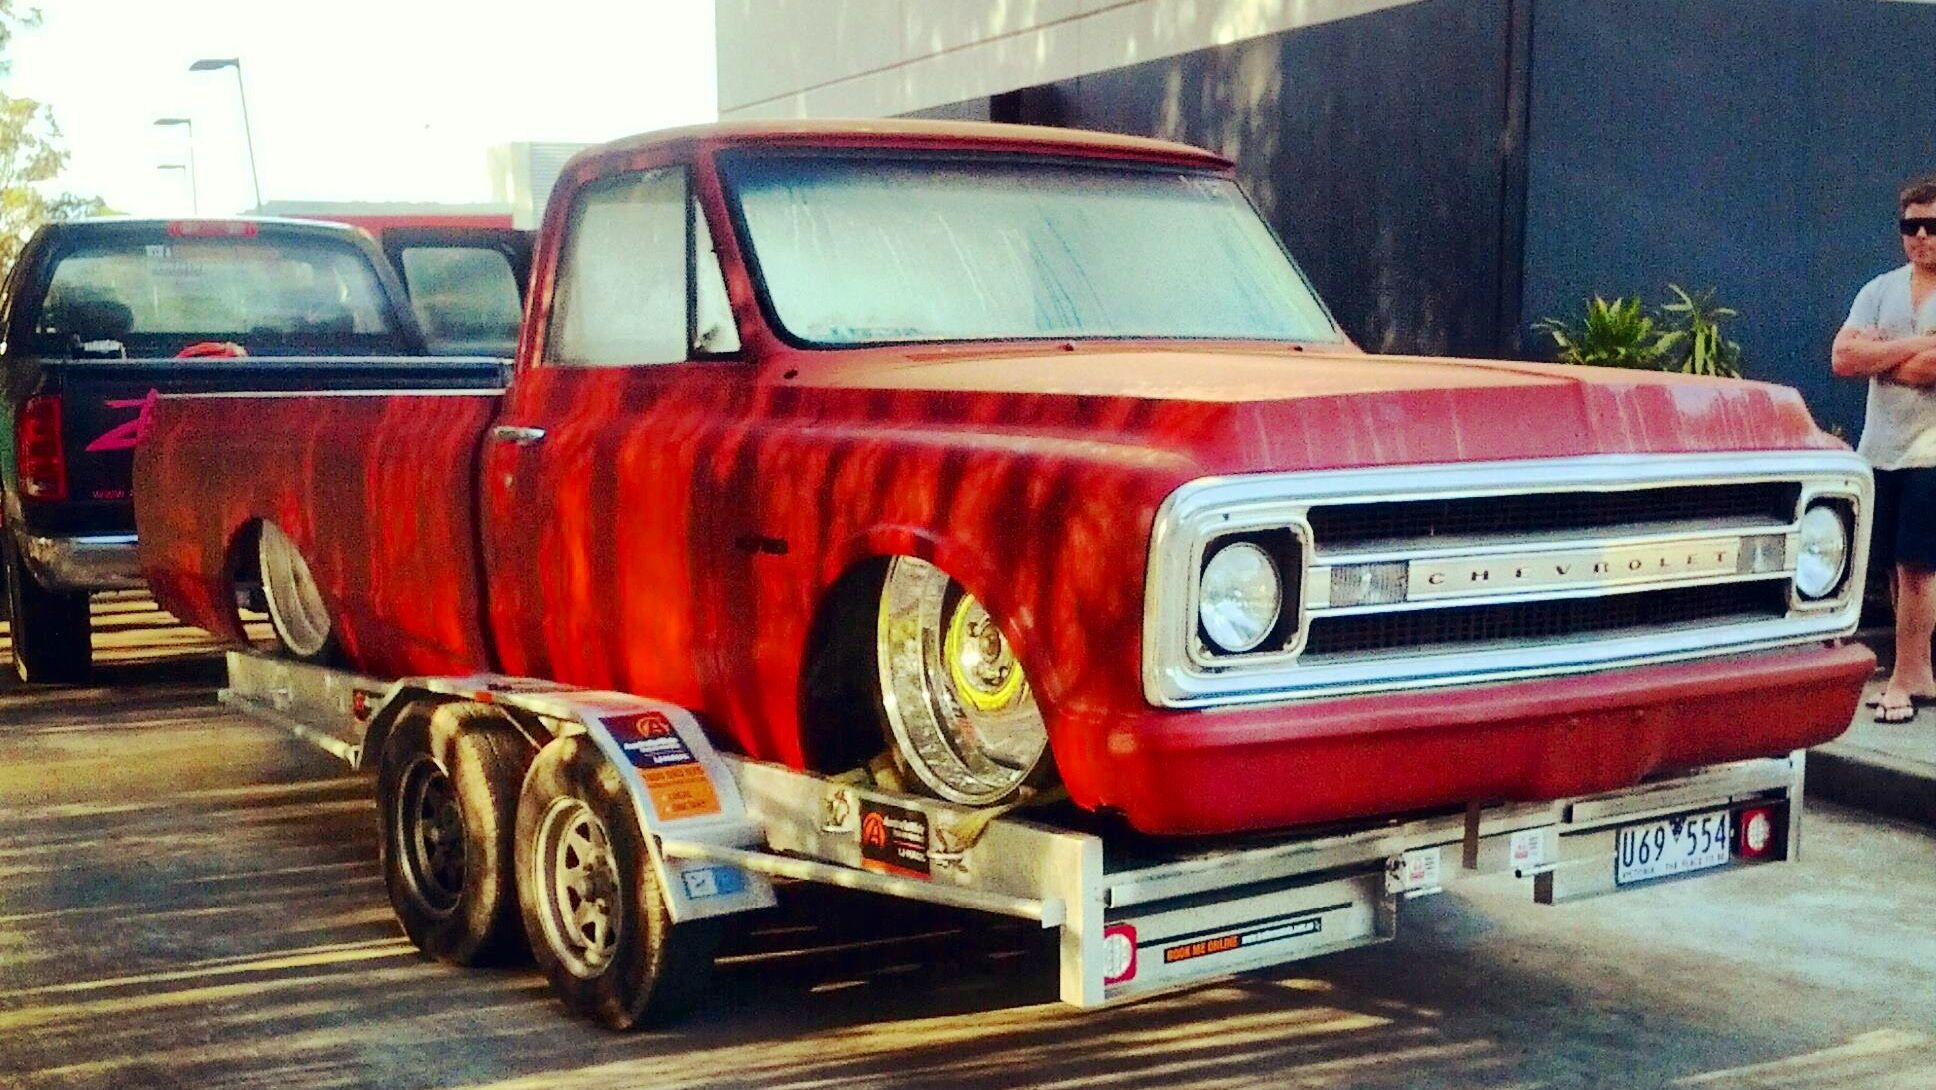 69 70 chevy c10 trucks americans made truck pinterest trucks chevy trucks and c10 trucks. Black Bedroom Furniture Sets. Home Design Ideas